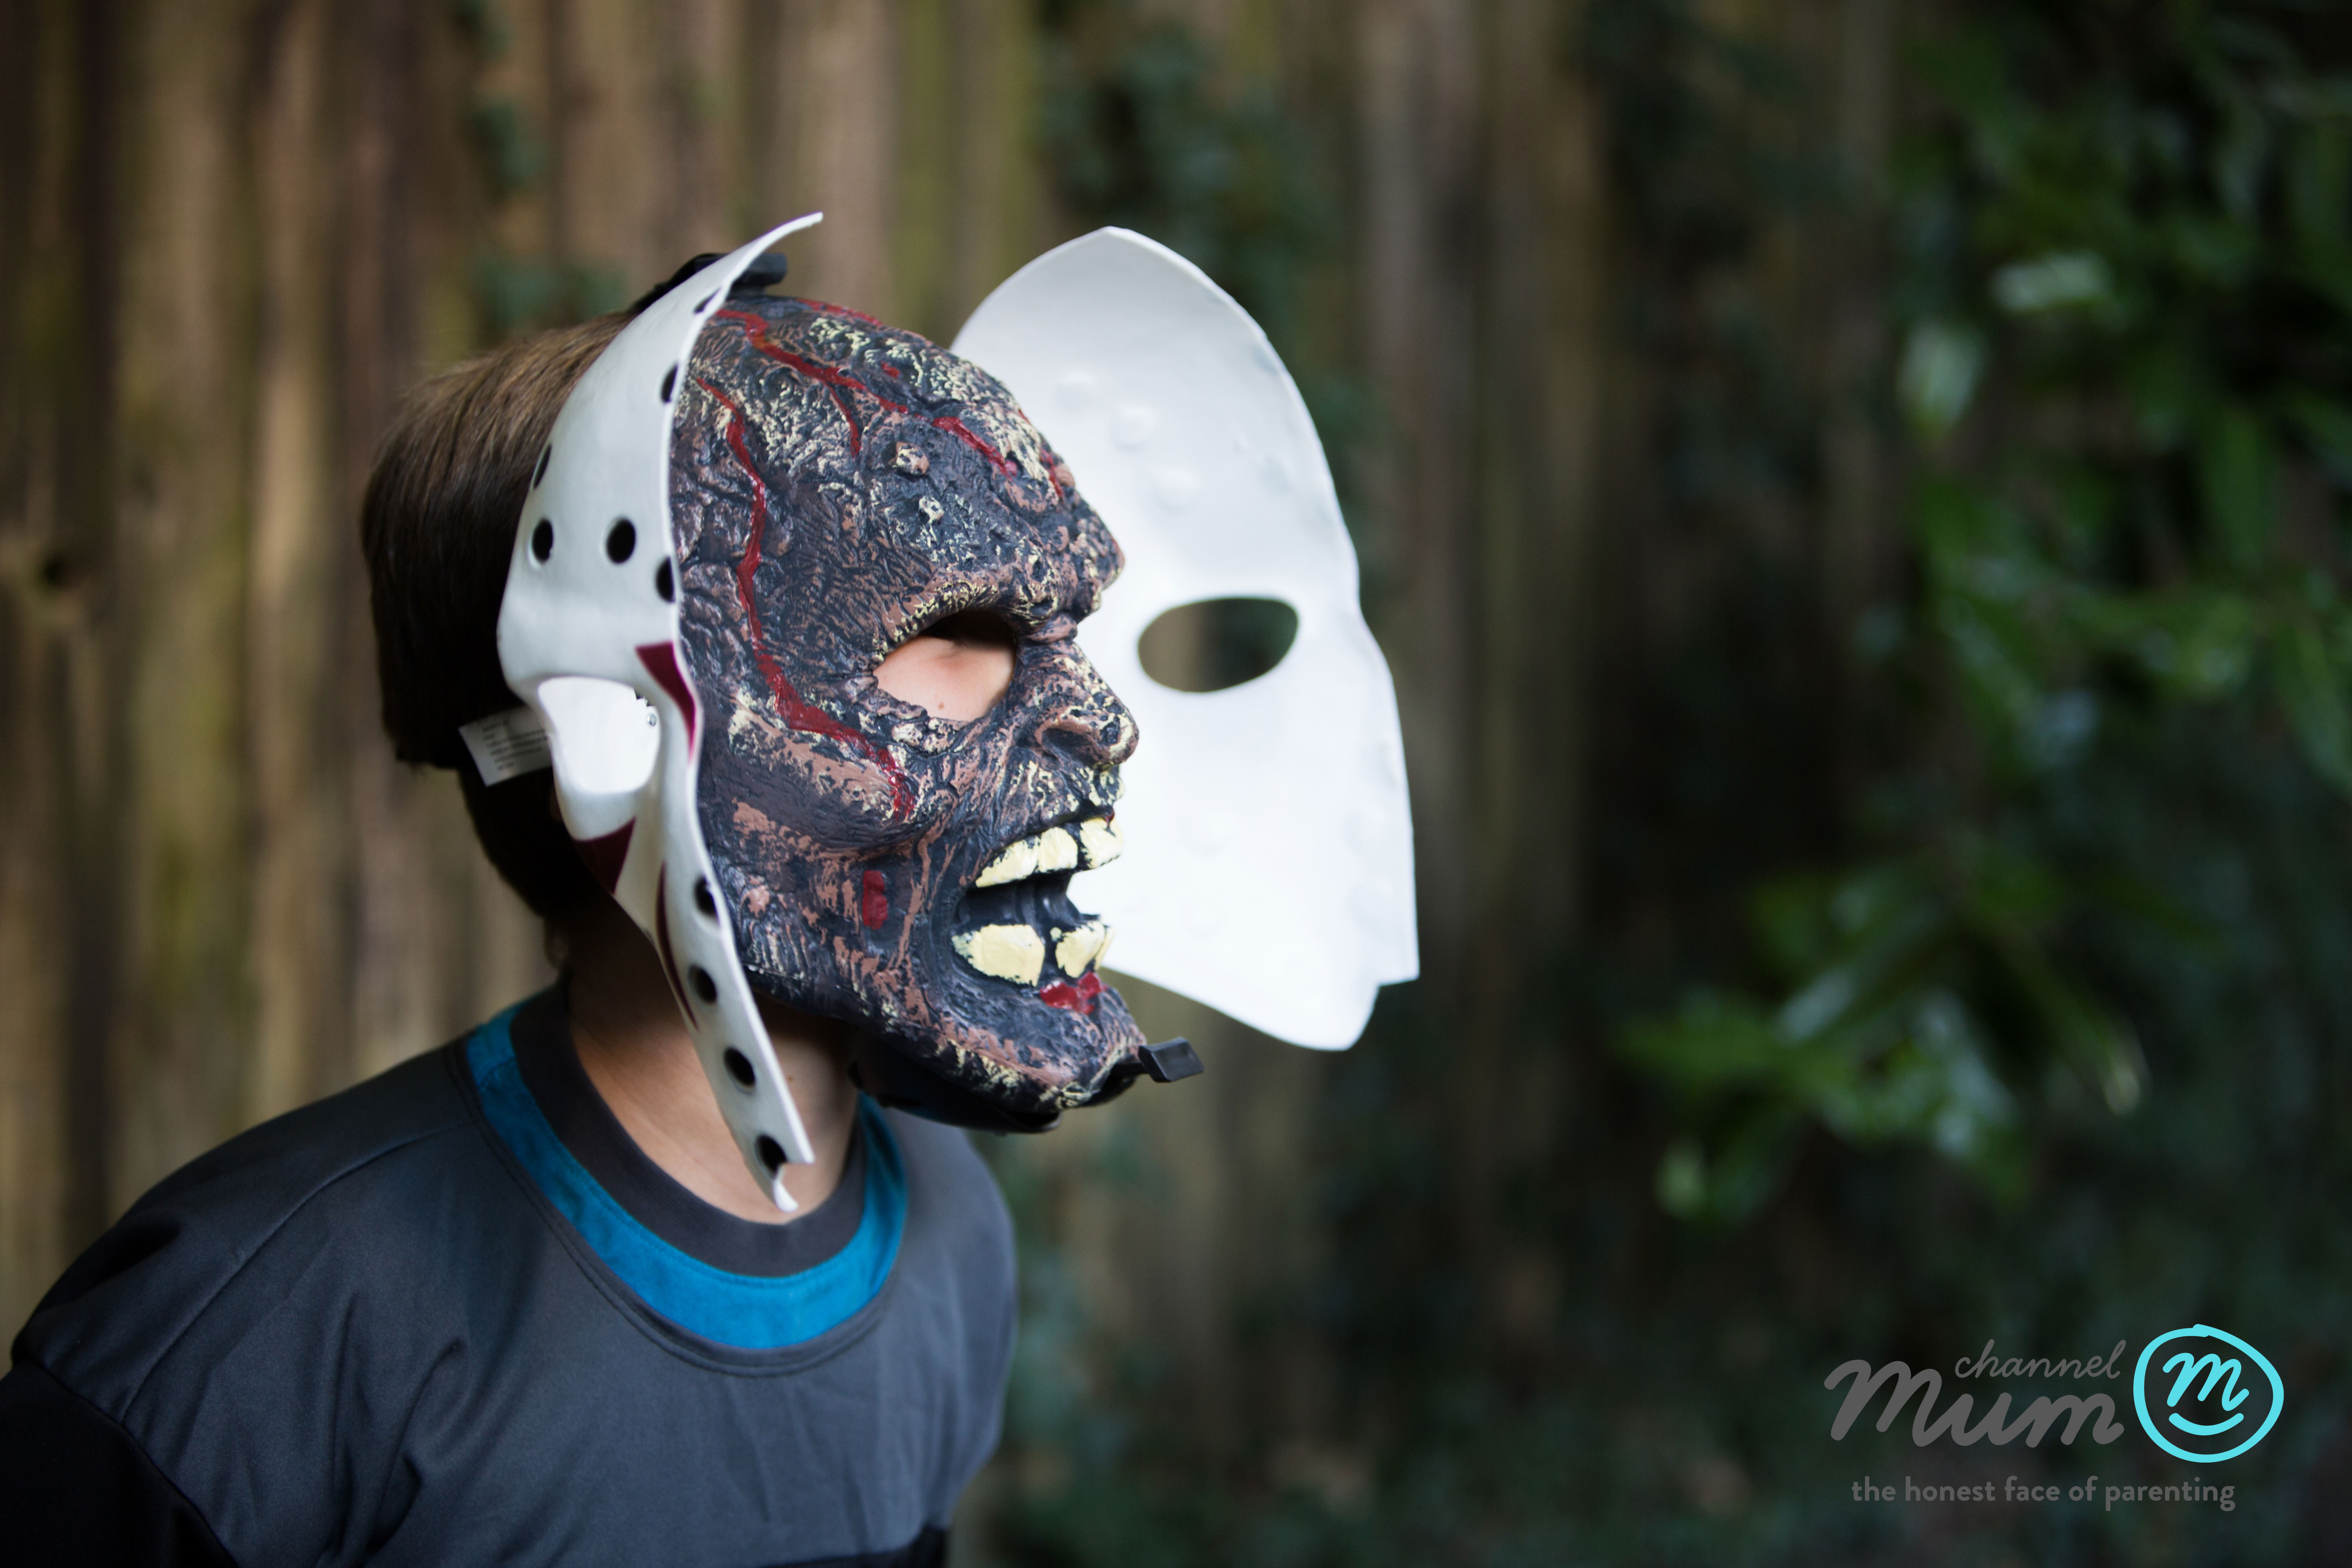 The Eight Most Evil Halloween Costumes For Kids | HuffPost UK